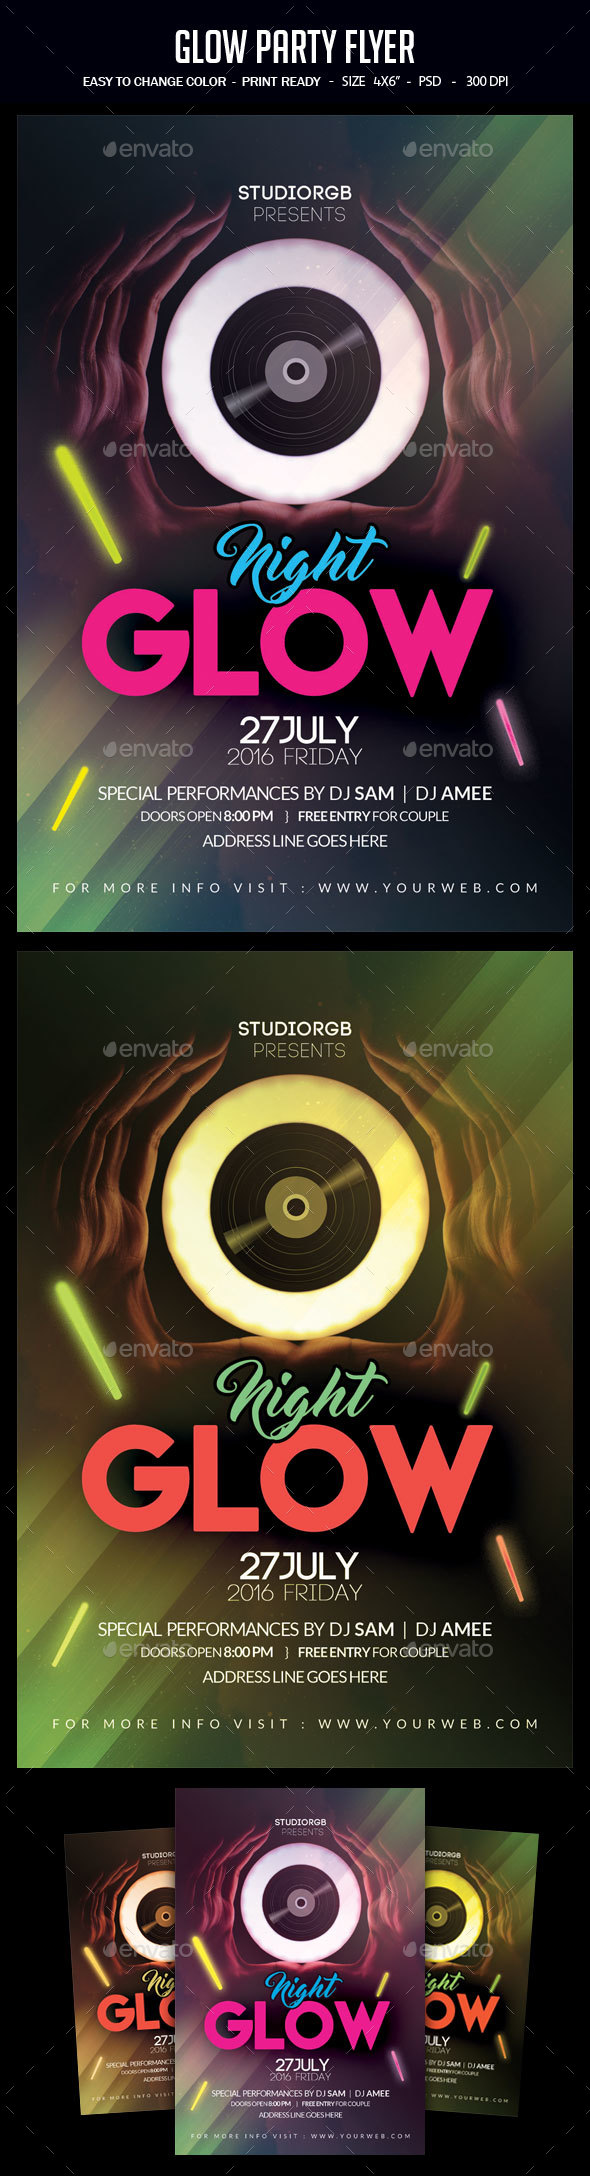 Glow Party Flyer - Clubs & Parties Events